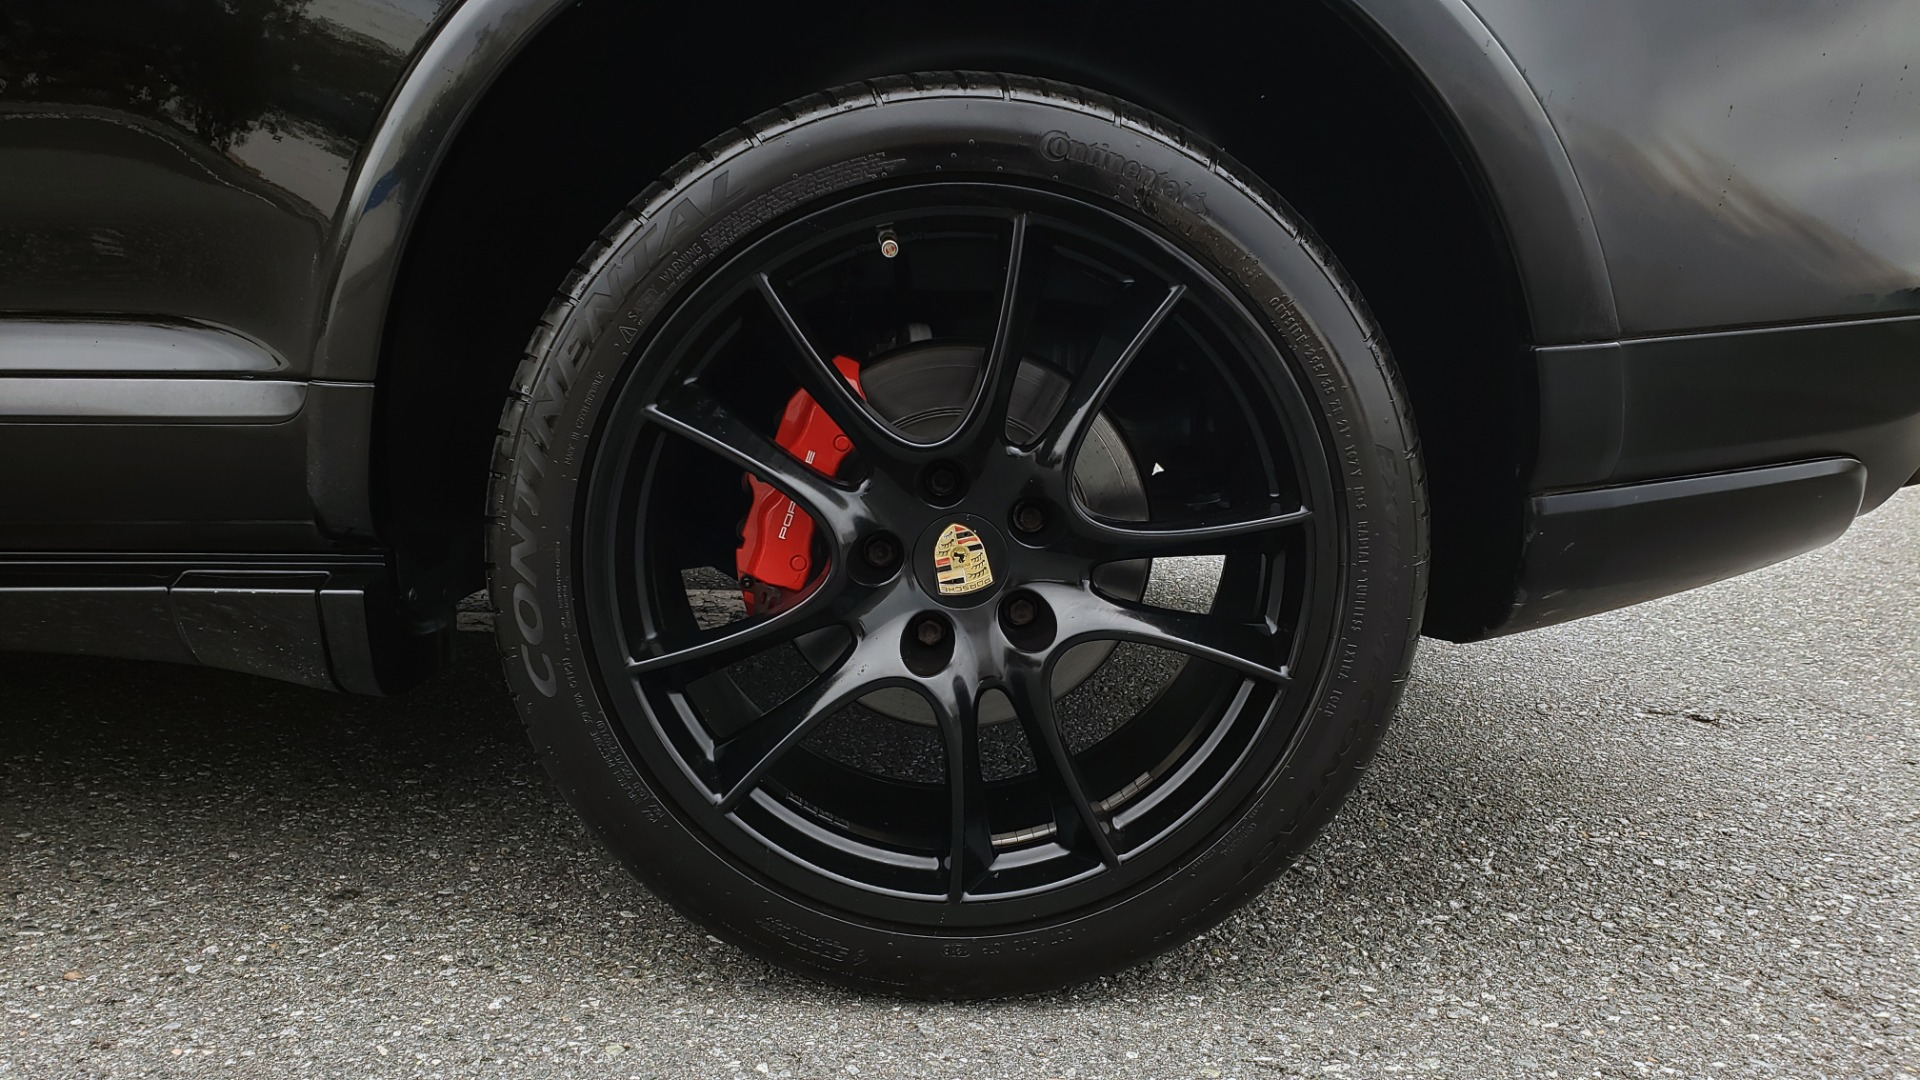 Used 2008 Porsche CAYENNE GTS TIPTRONIC / NAV / SUNROOF / REARVIEW / BOSE for sale Sold at Formula Imports in Charlotte NC 28227 97